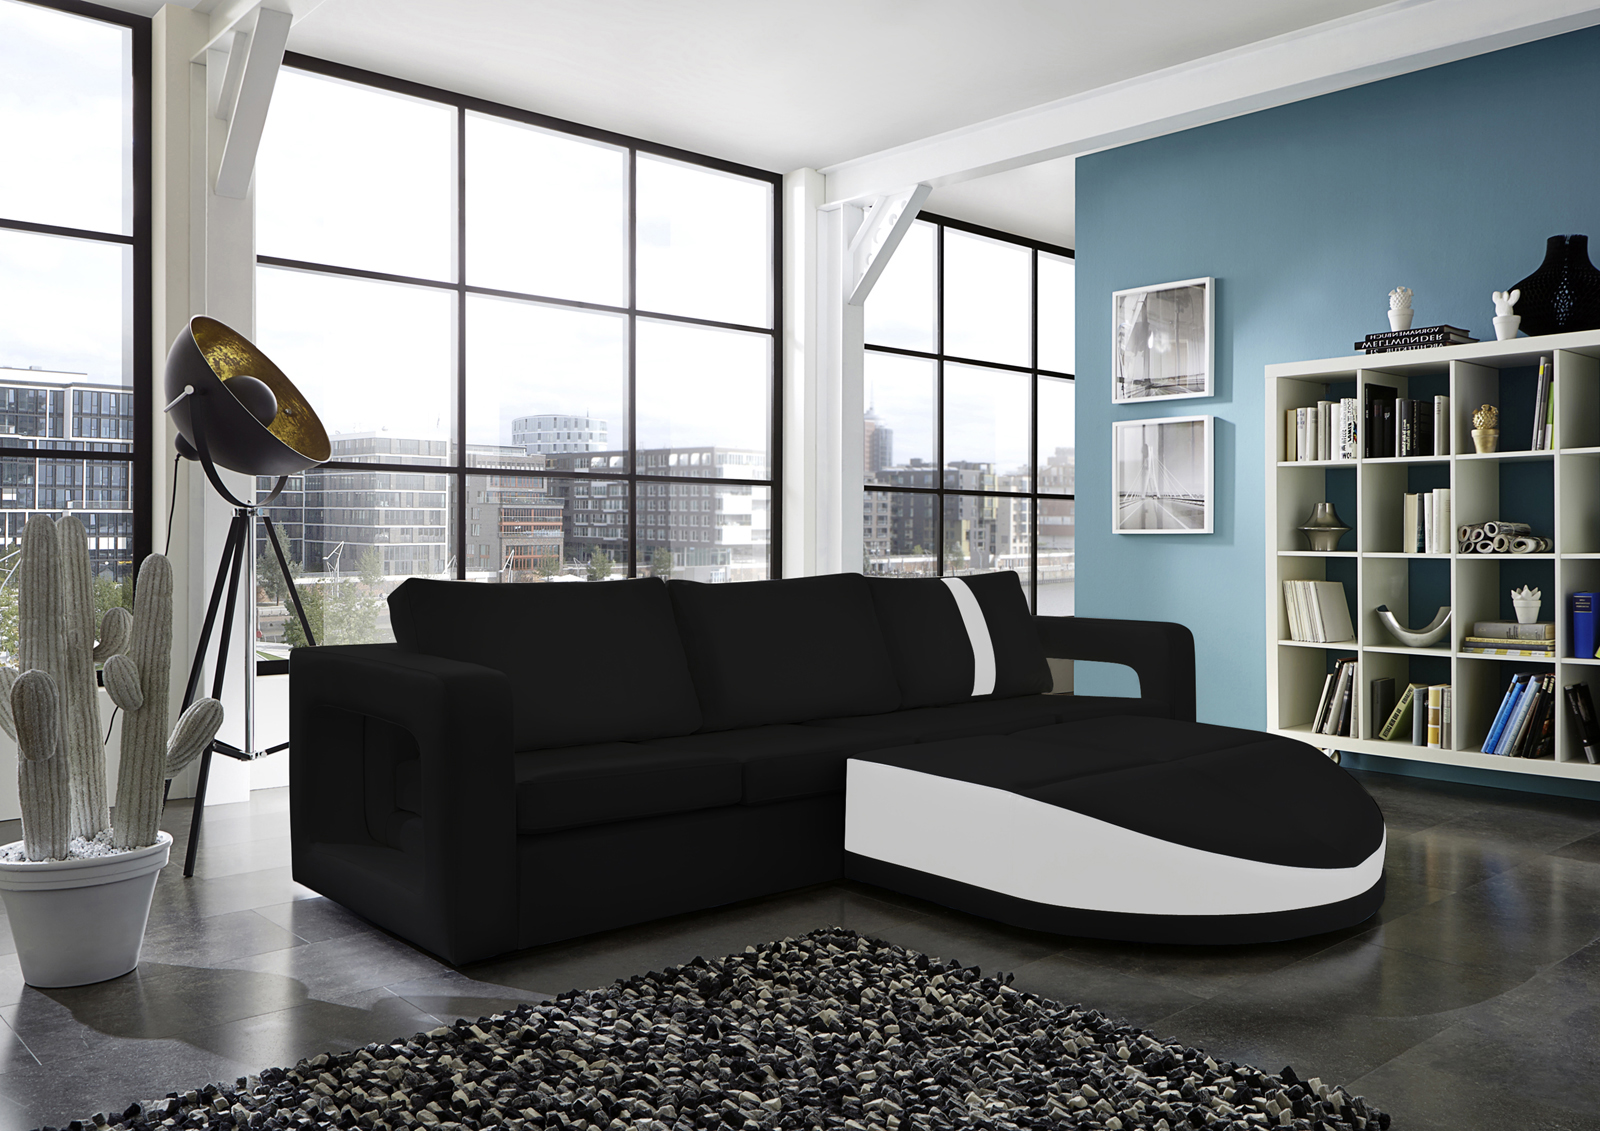 sam ecksofa schwarz wei sofa doccia 274 x 200 cm. Black Bedroom Furniture Sets. Home Design Ideas